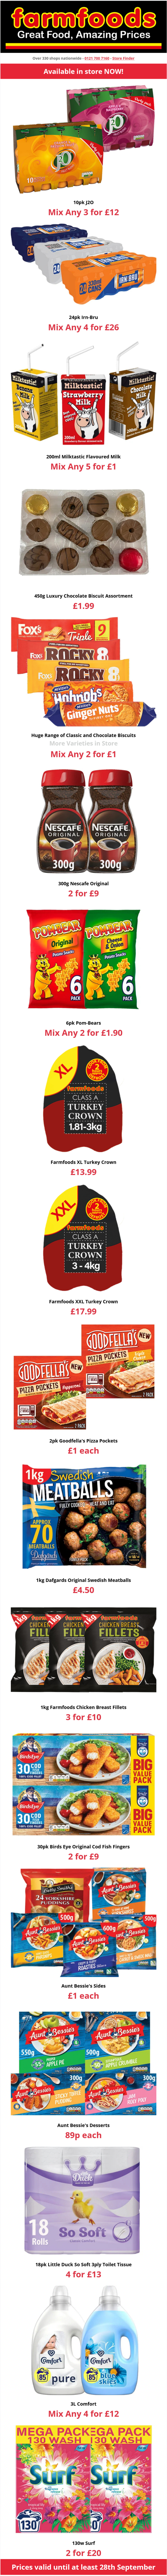 Farmfoods Offers from 8/9/2021 Preview